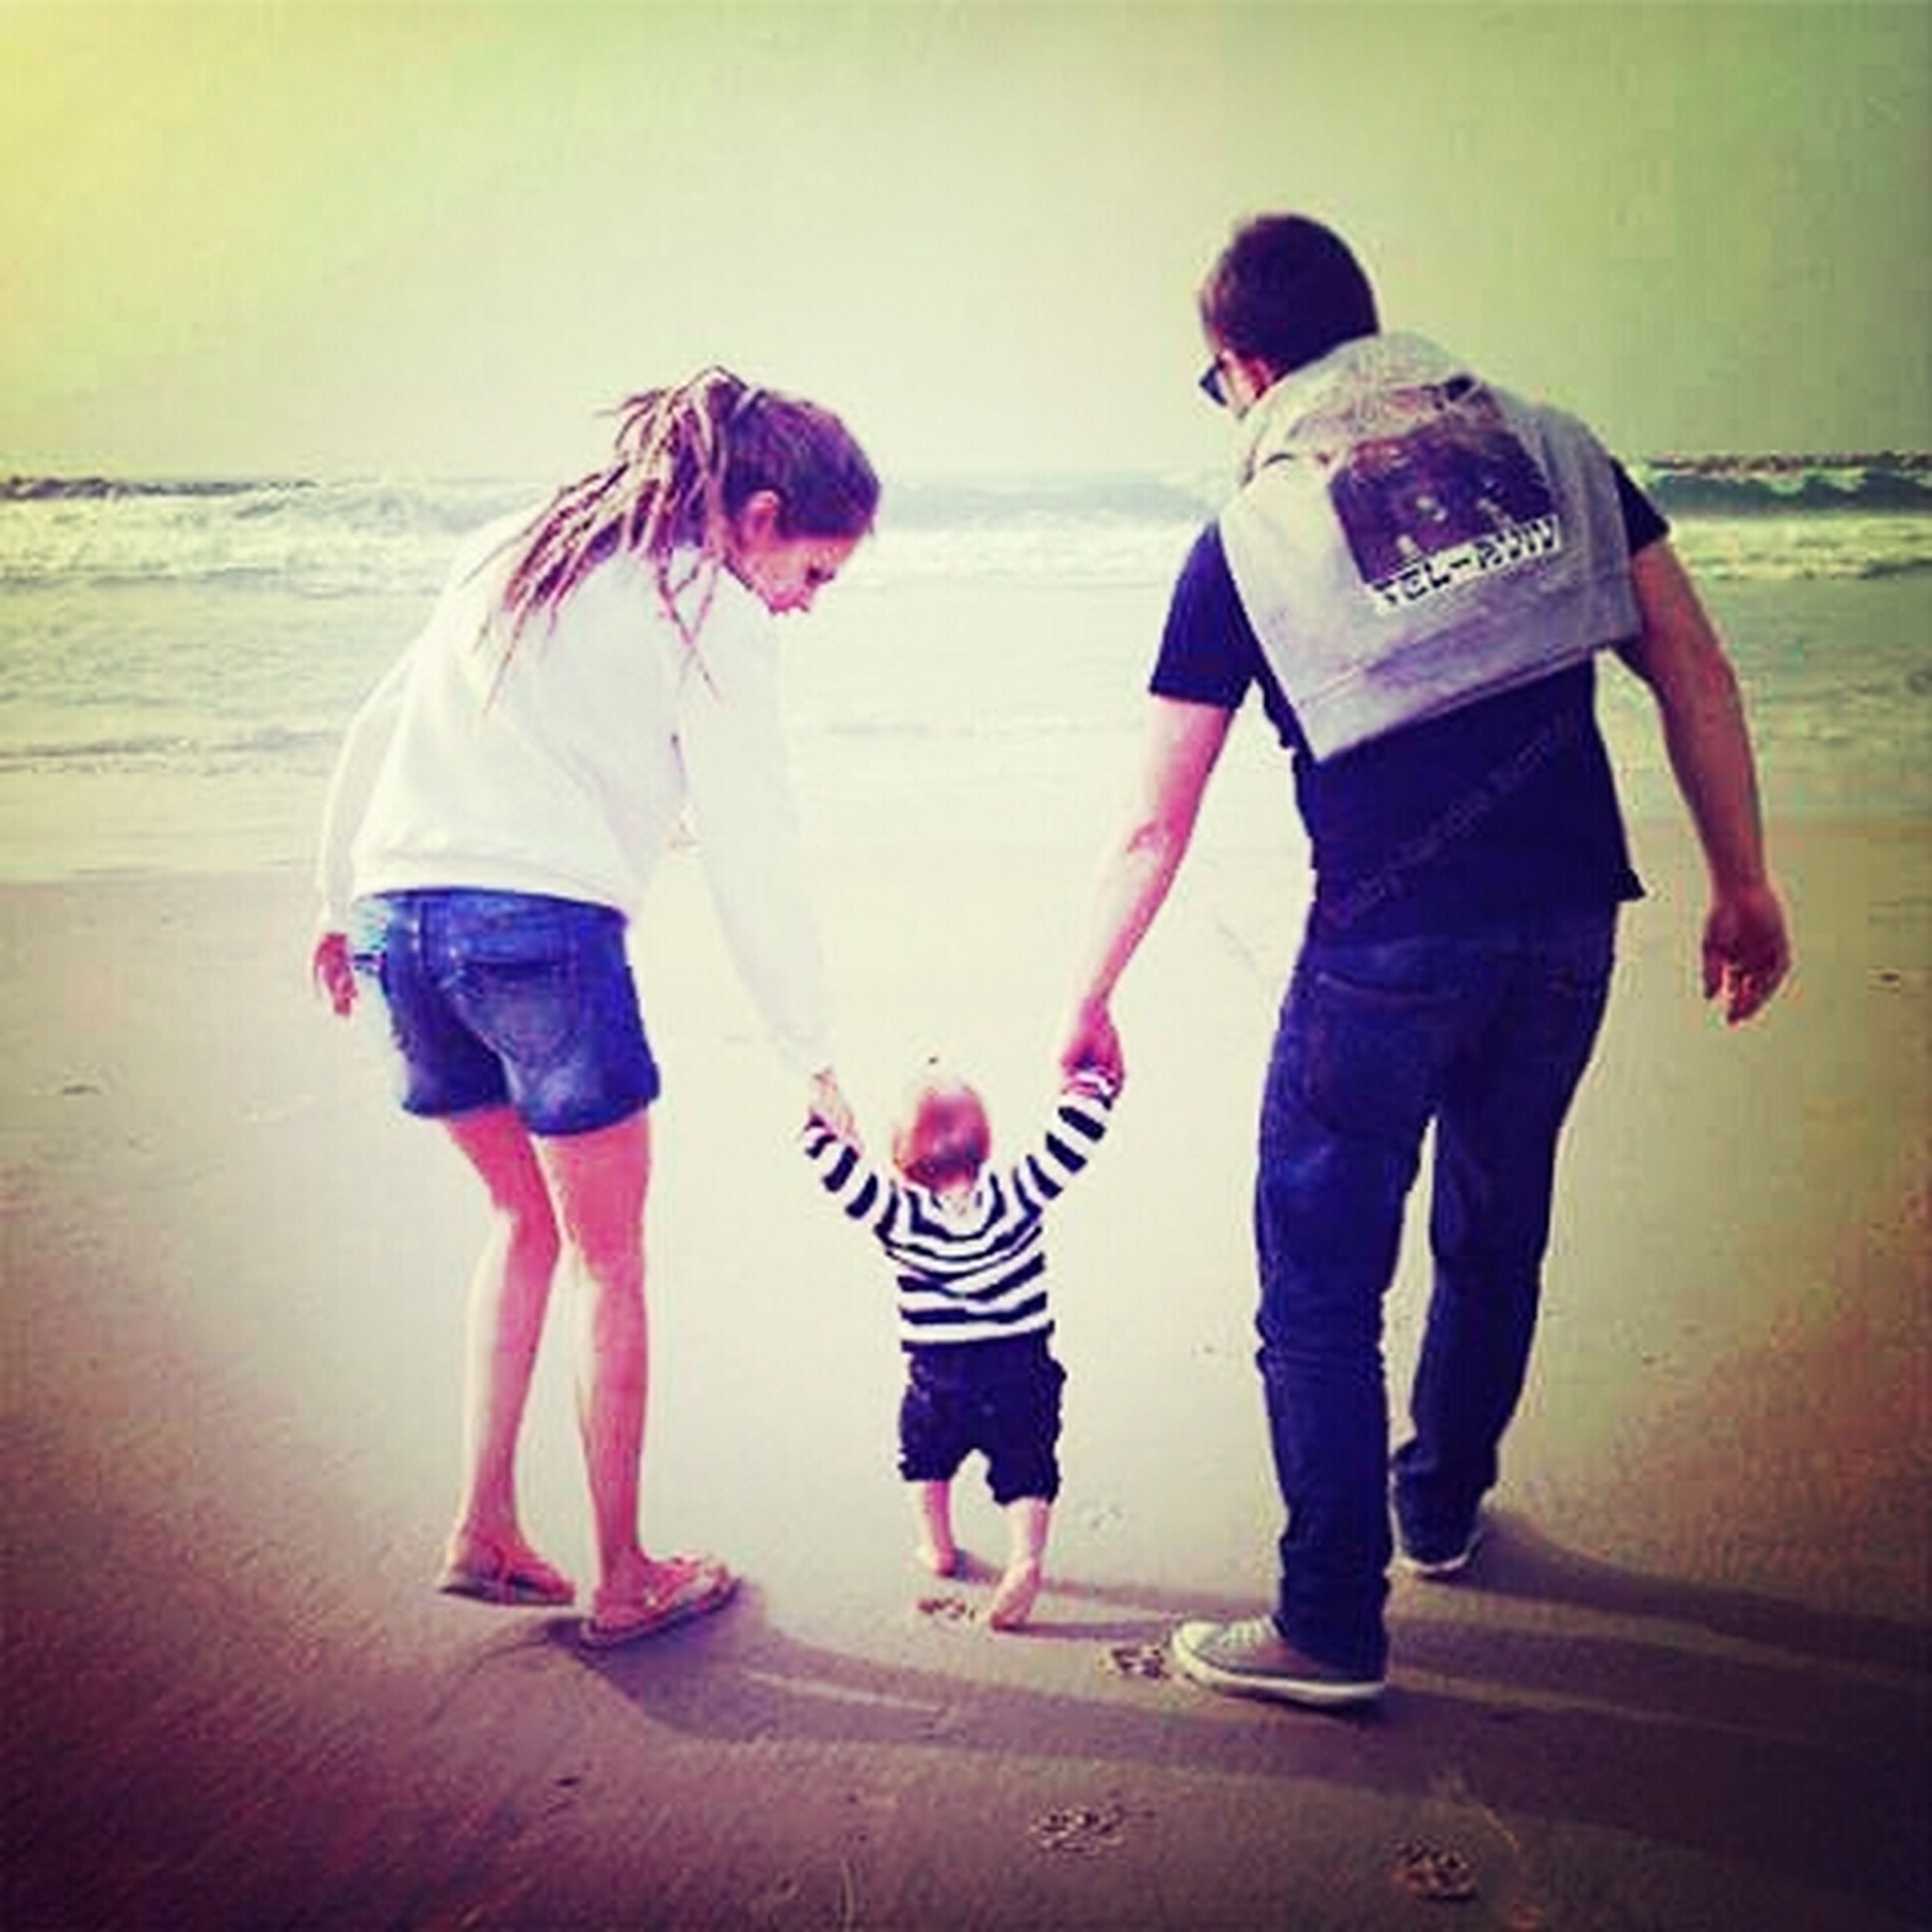 childhood, lifestyles, full length, casual clothing, boys, leisure activity, girls, standing, elementary age, rear view, walking, togetherness, love, bonding, beach, person, day